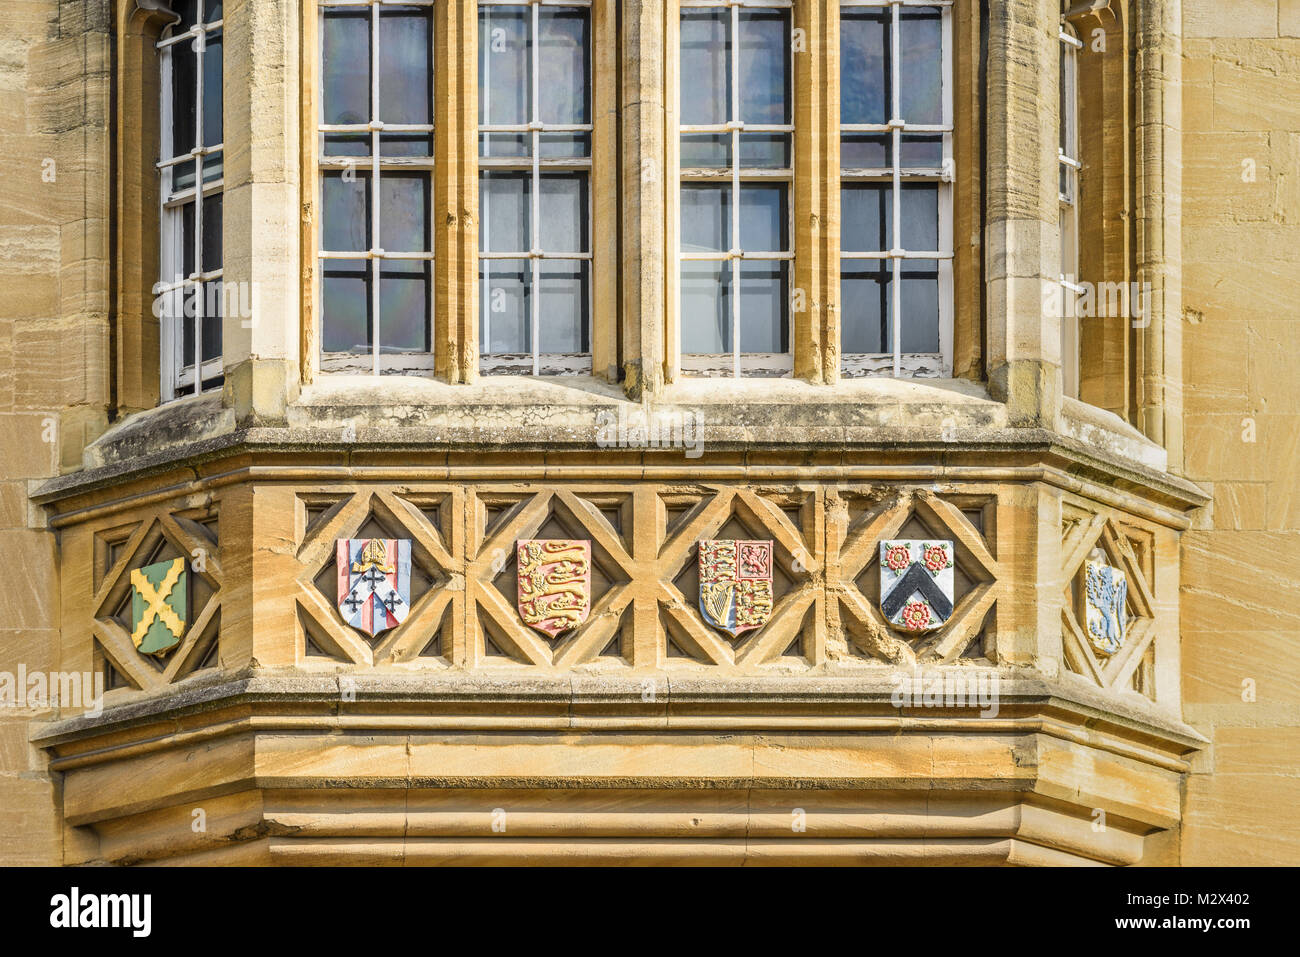 Carved stone emblems on a streetside window of Oriel college at the university in the city of Oxford, England. - Stock Image